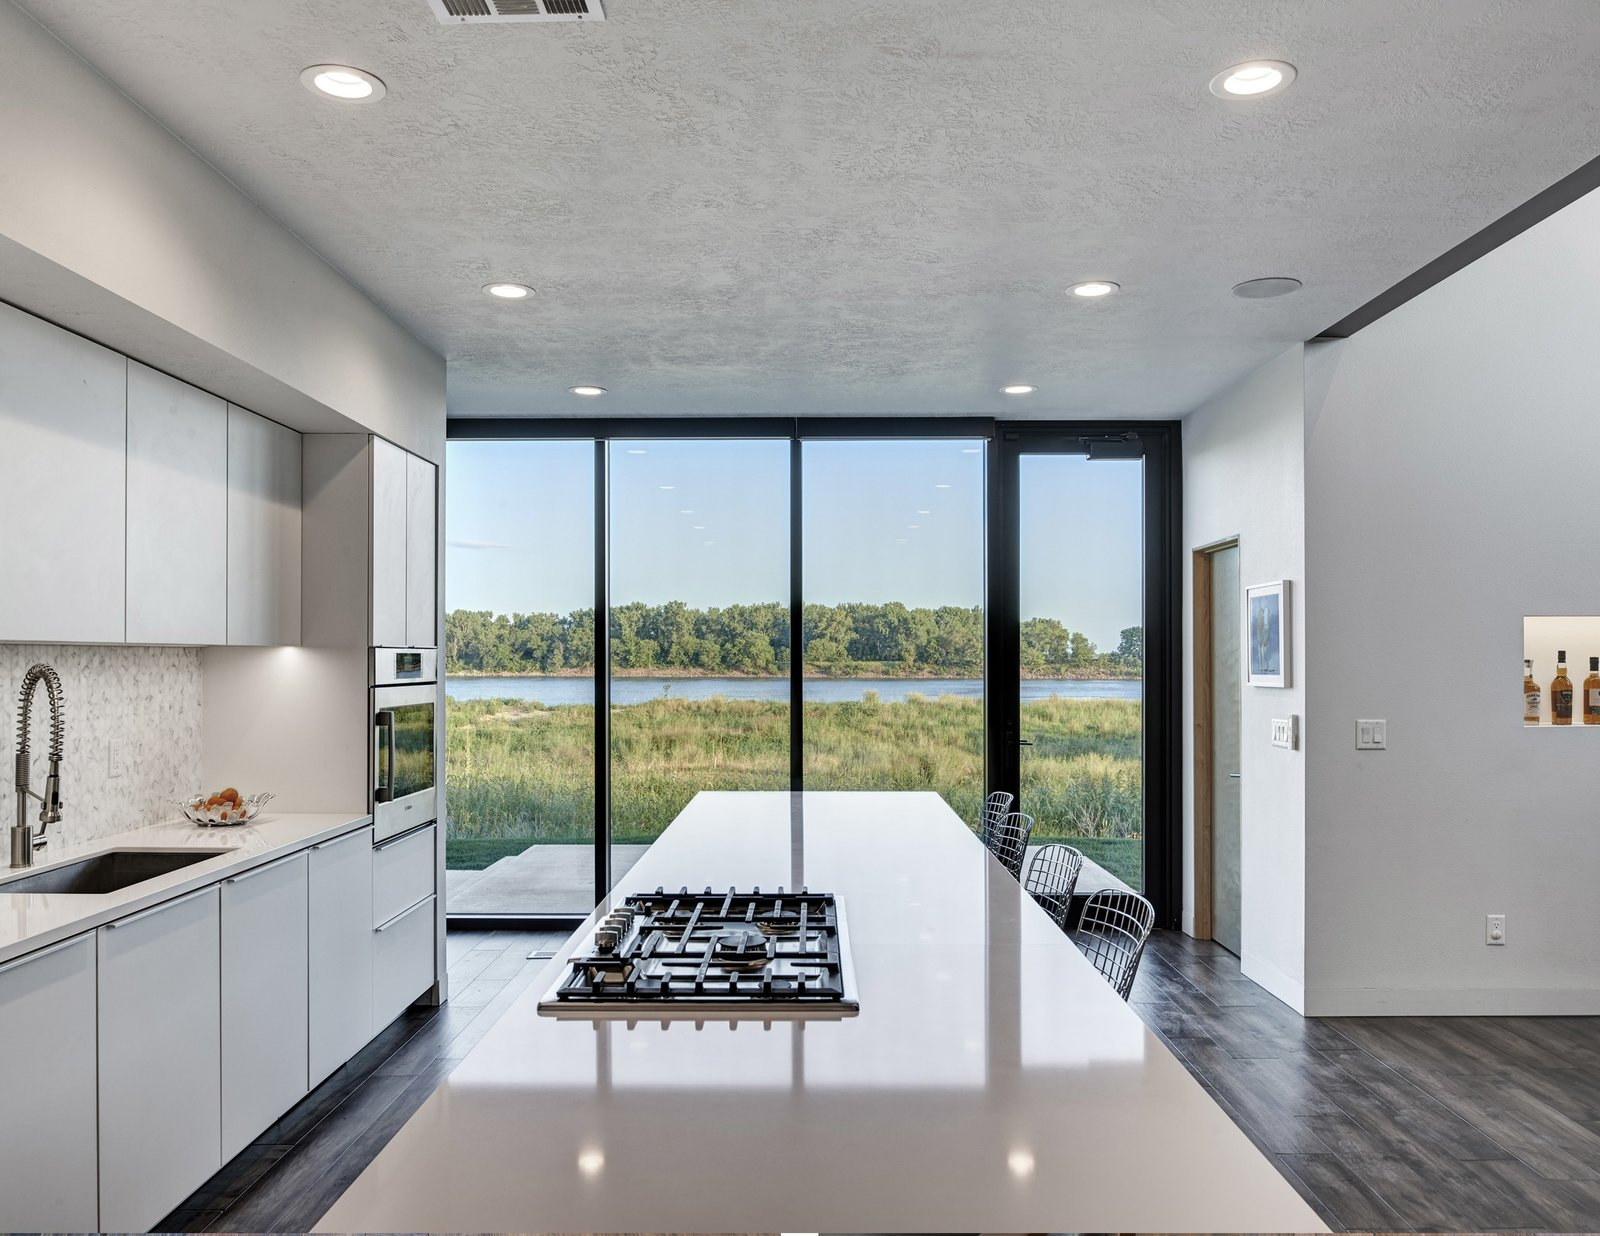 Quartzite Counter, White Cabinet, Dark Hardwood Floor, Ceramic Tile Backsplashe, Wood Cabinet, Recessed Lighting, Wall Oven, Refrigerator, Cooktops, Wine Cooler, Dishwasher, Microwave, Undermount Sink, and Kitchen View to the kitchen island overlooking the Missouri River. (2017)  530 house